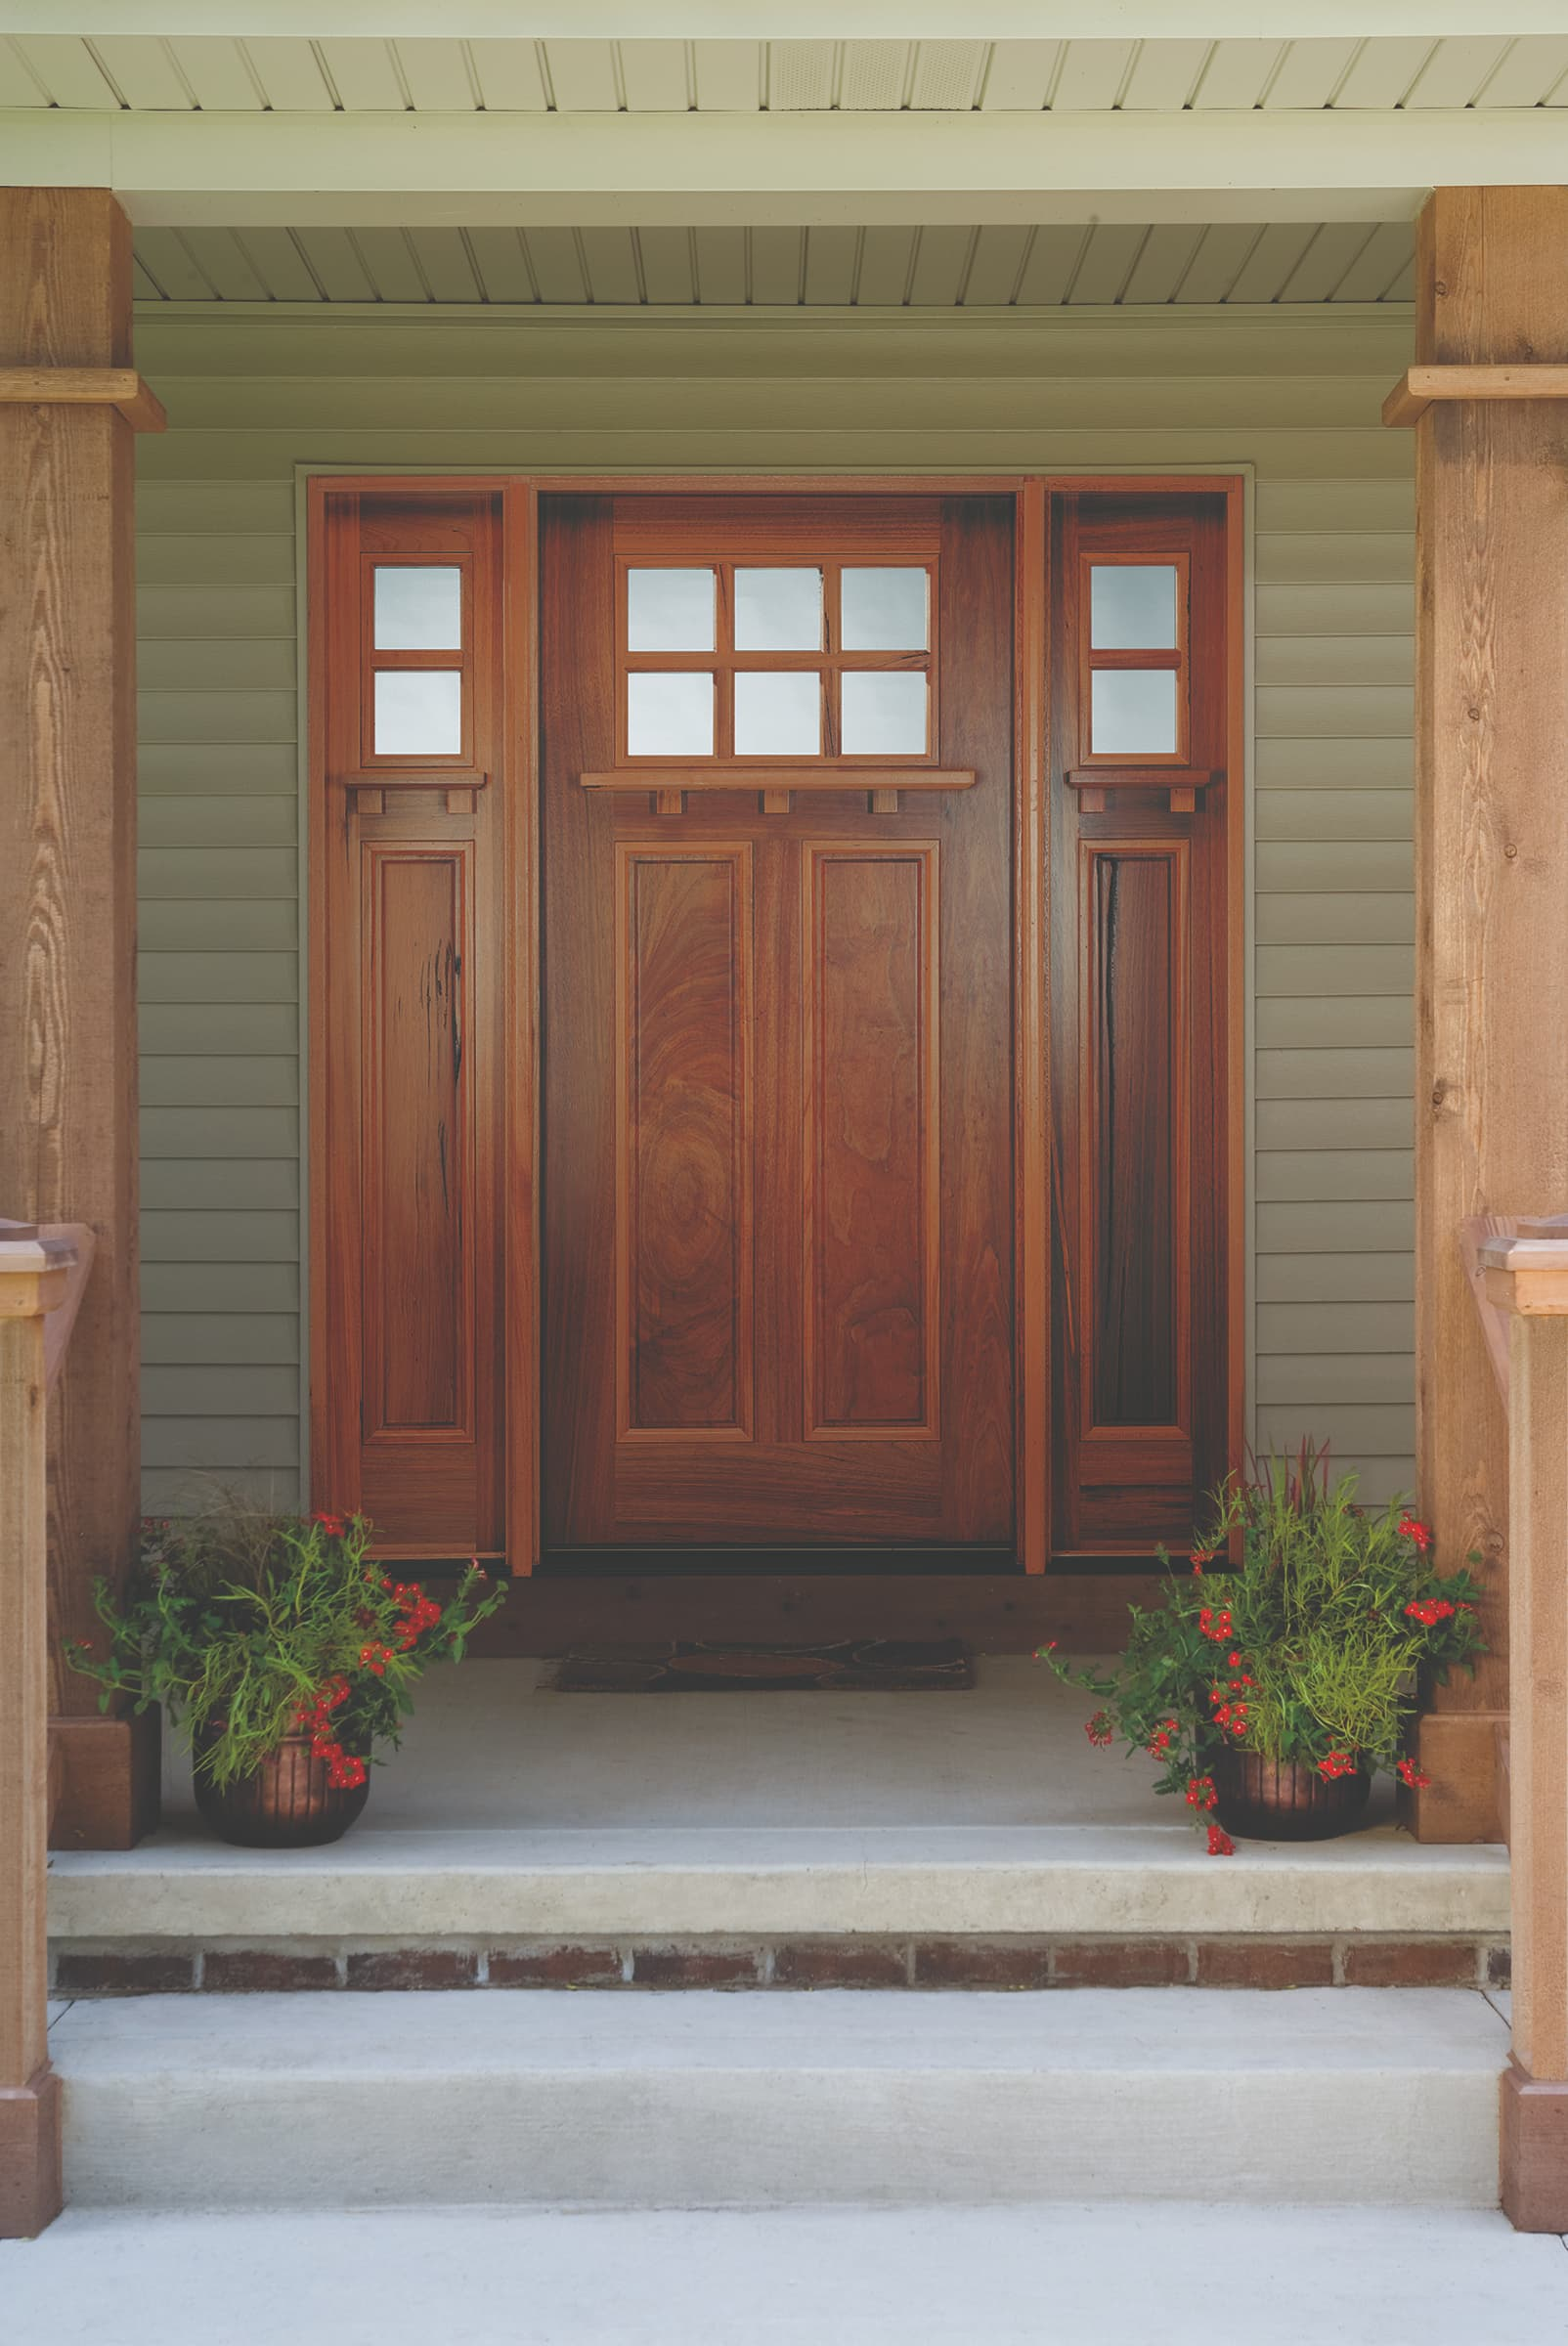 Craftsman style front door made of real wood set in inviting porch